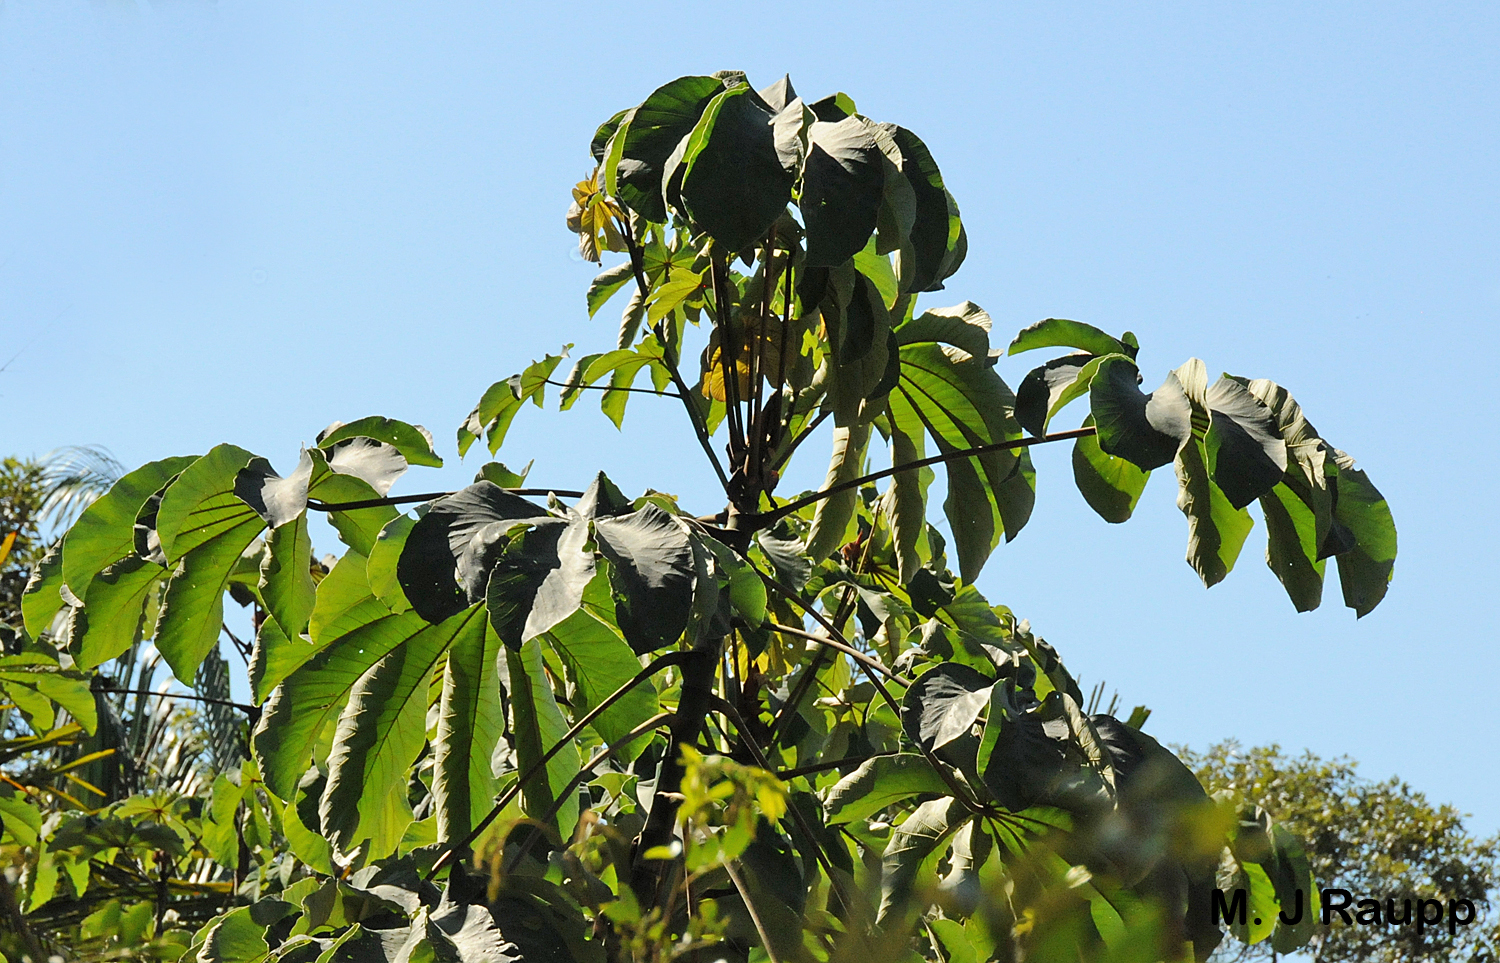 Leaves of the  Cecropia  are remarkably damage free owing to their  Azteca  ant bodyguards.